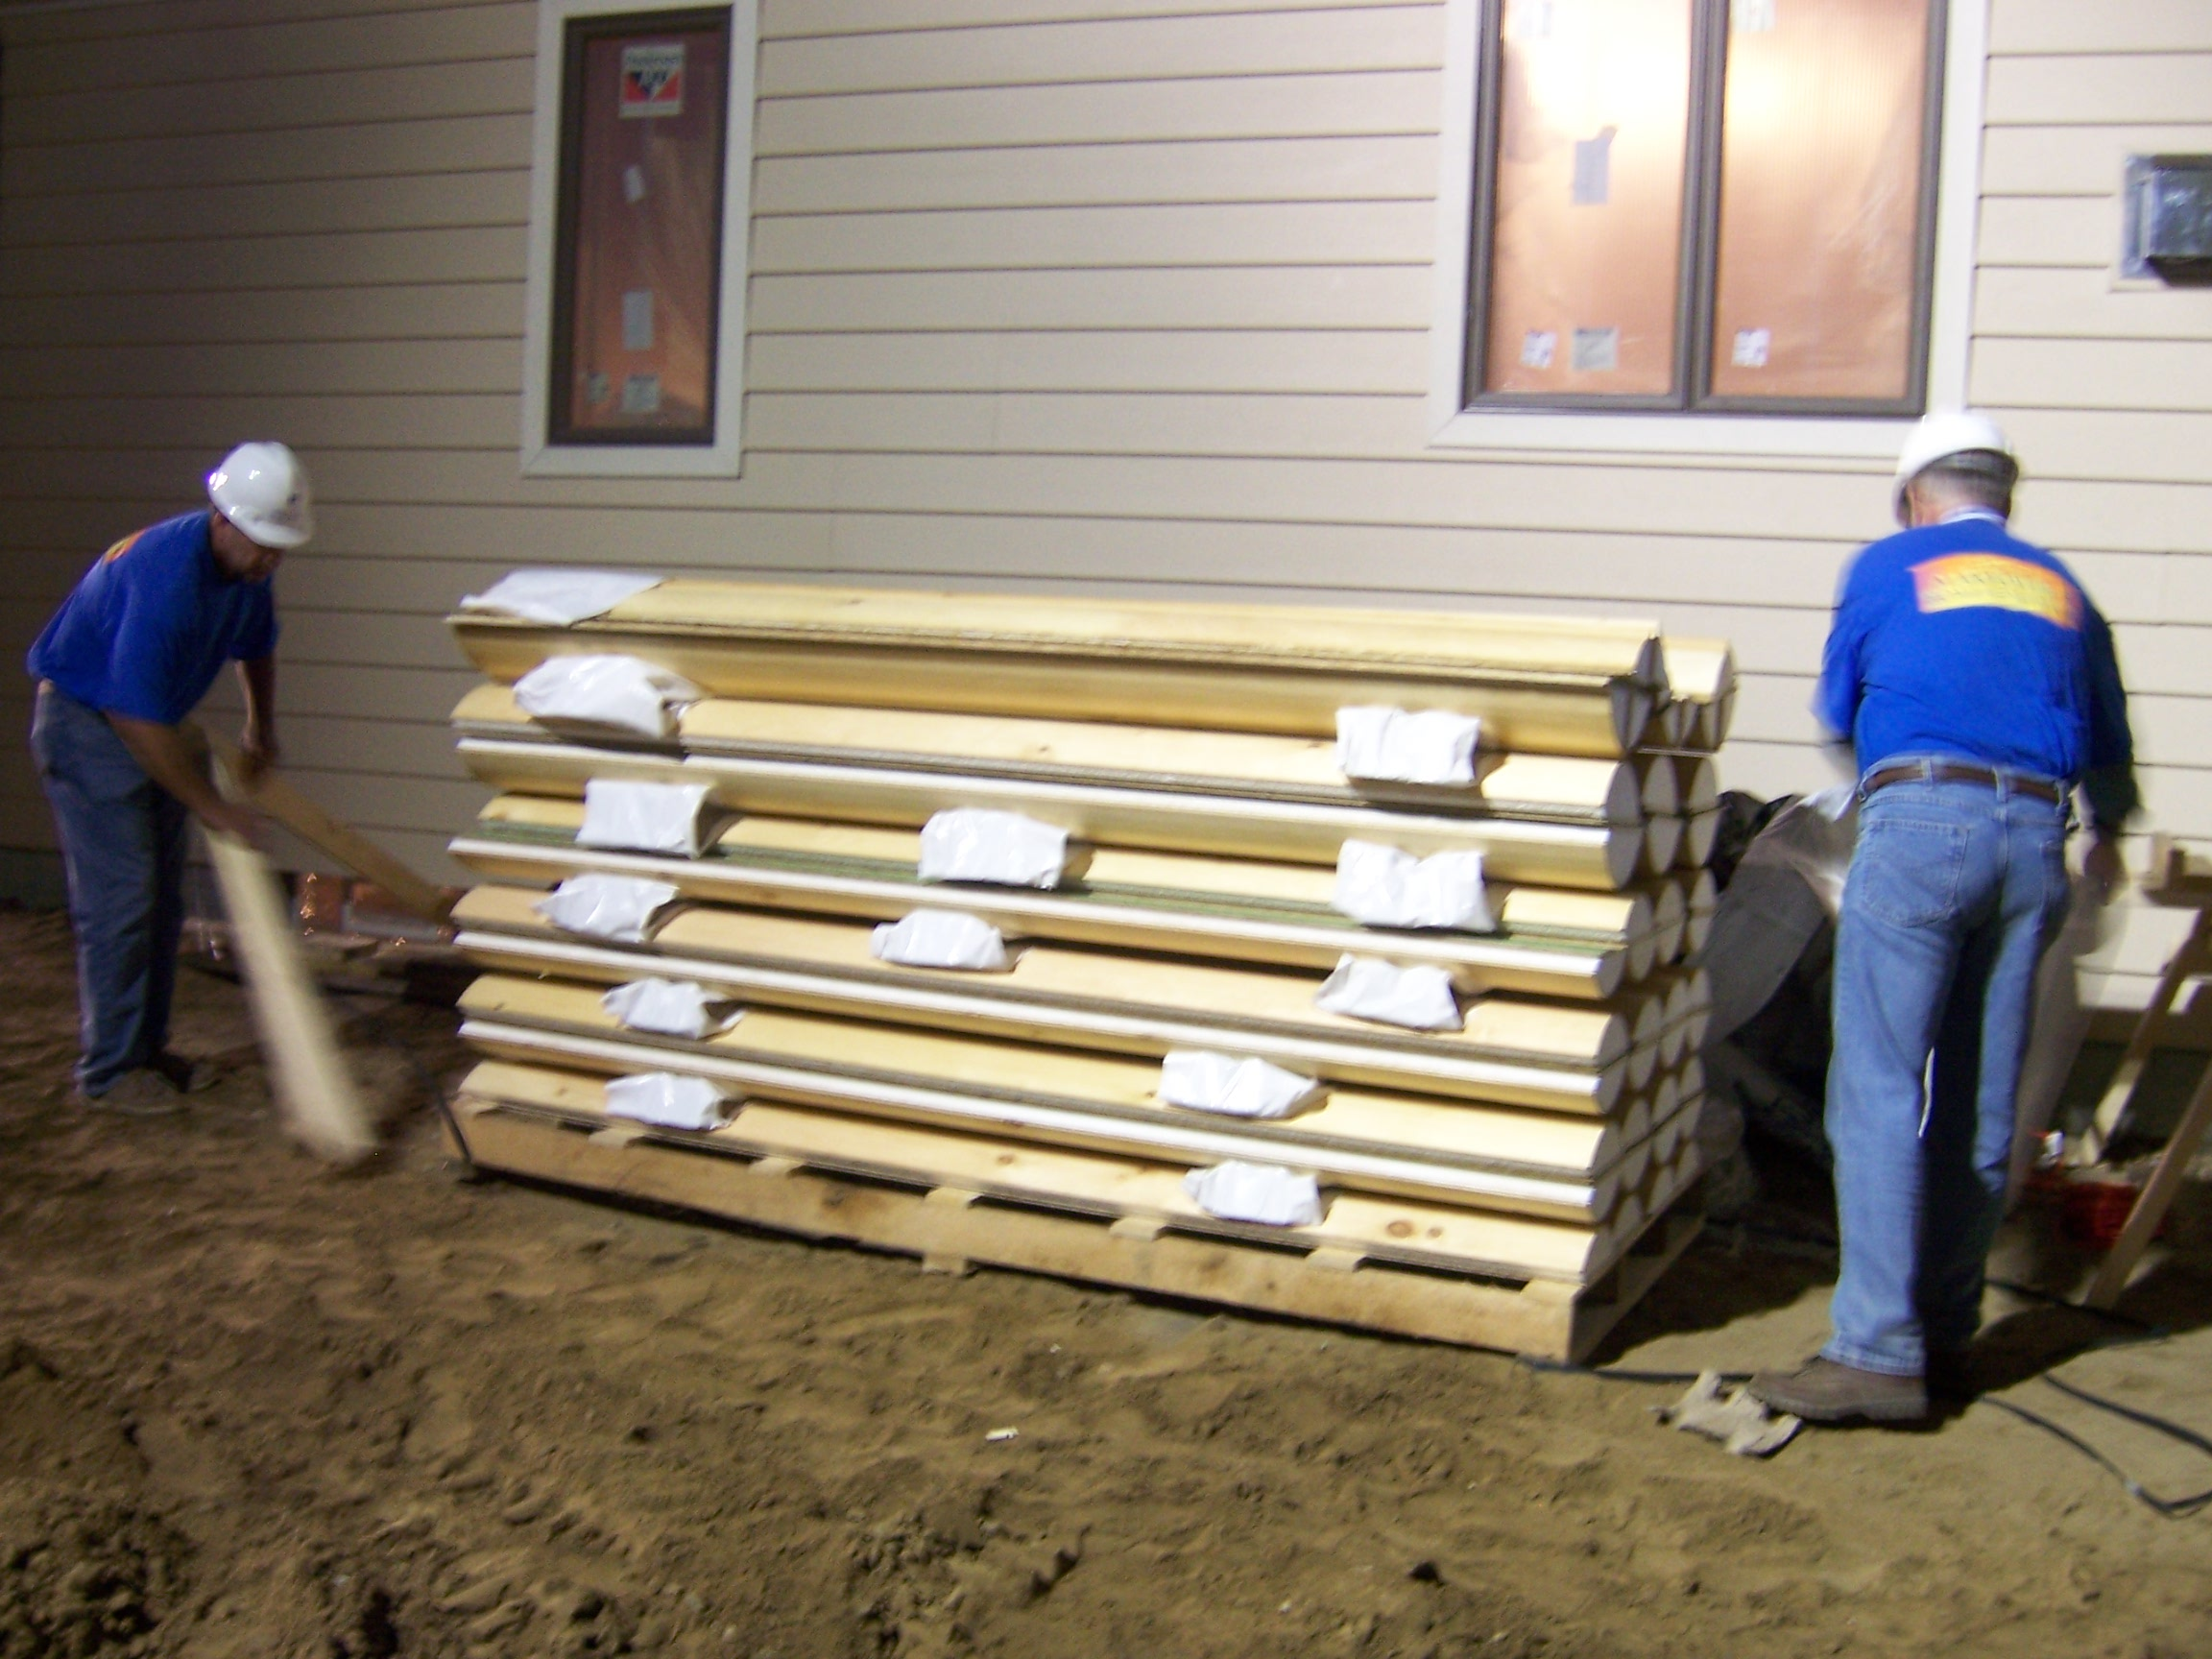 Abc 39 S Extreme Makeover Home Edition Uses E Log Log Siding: e log siding